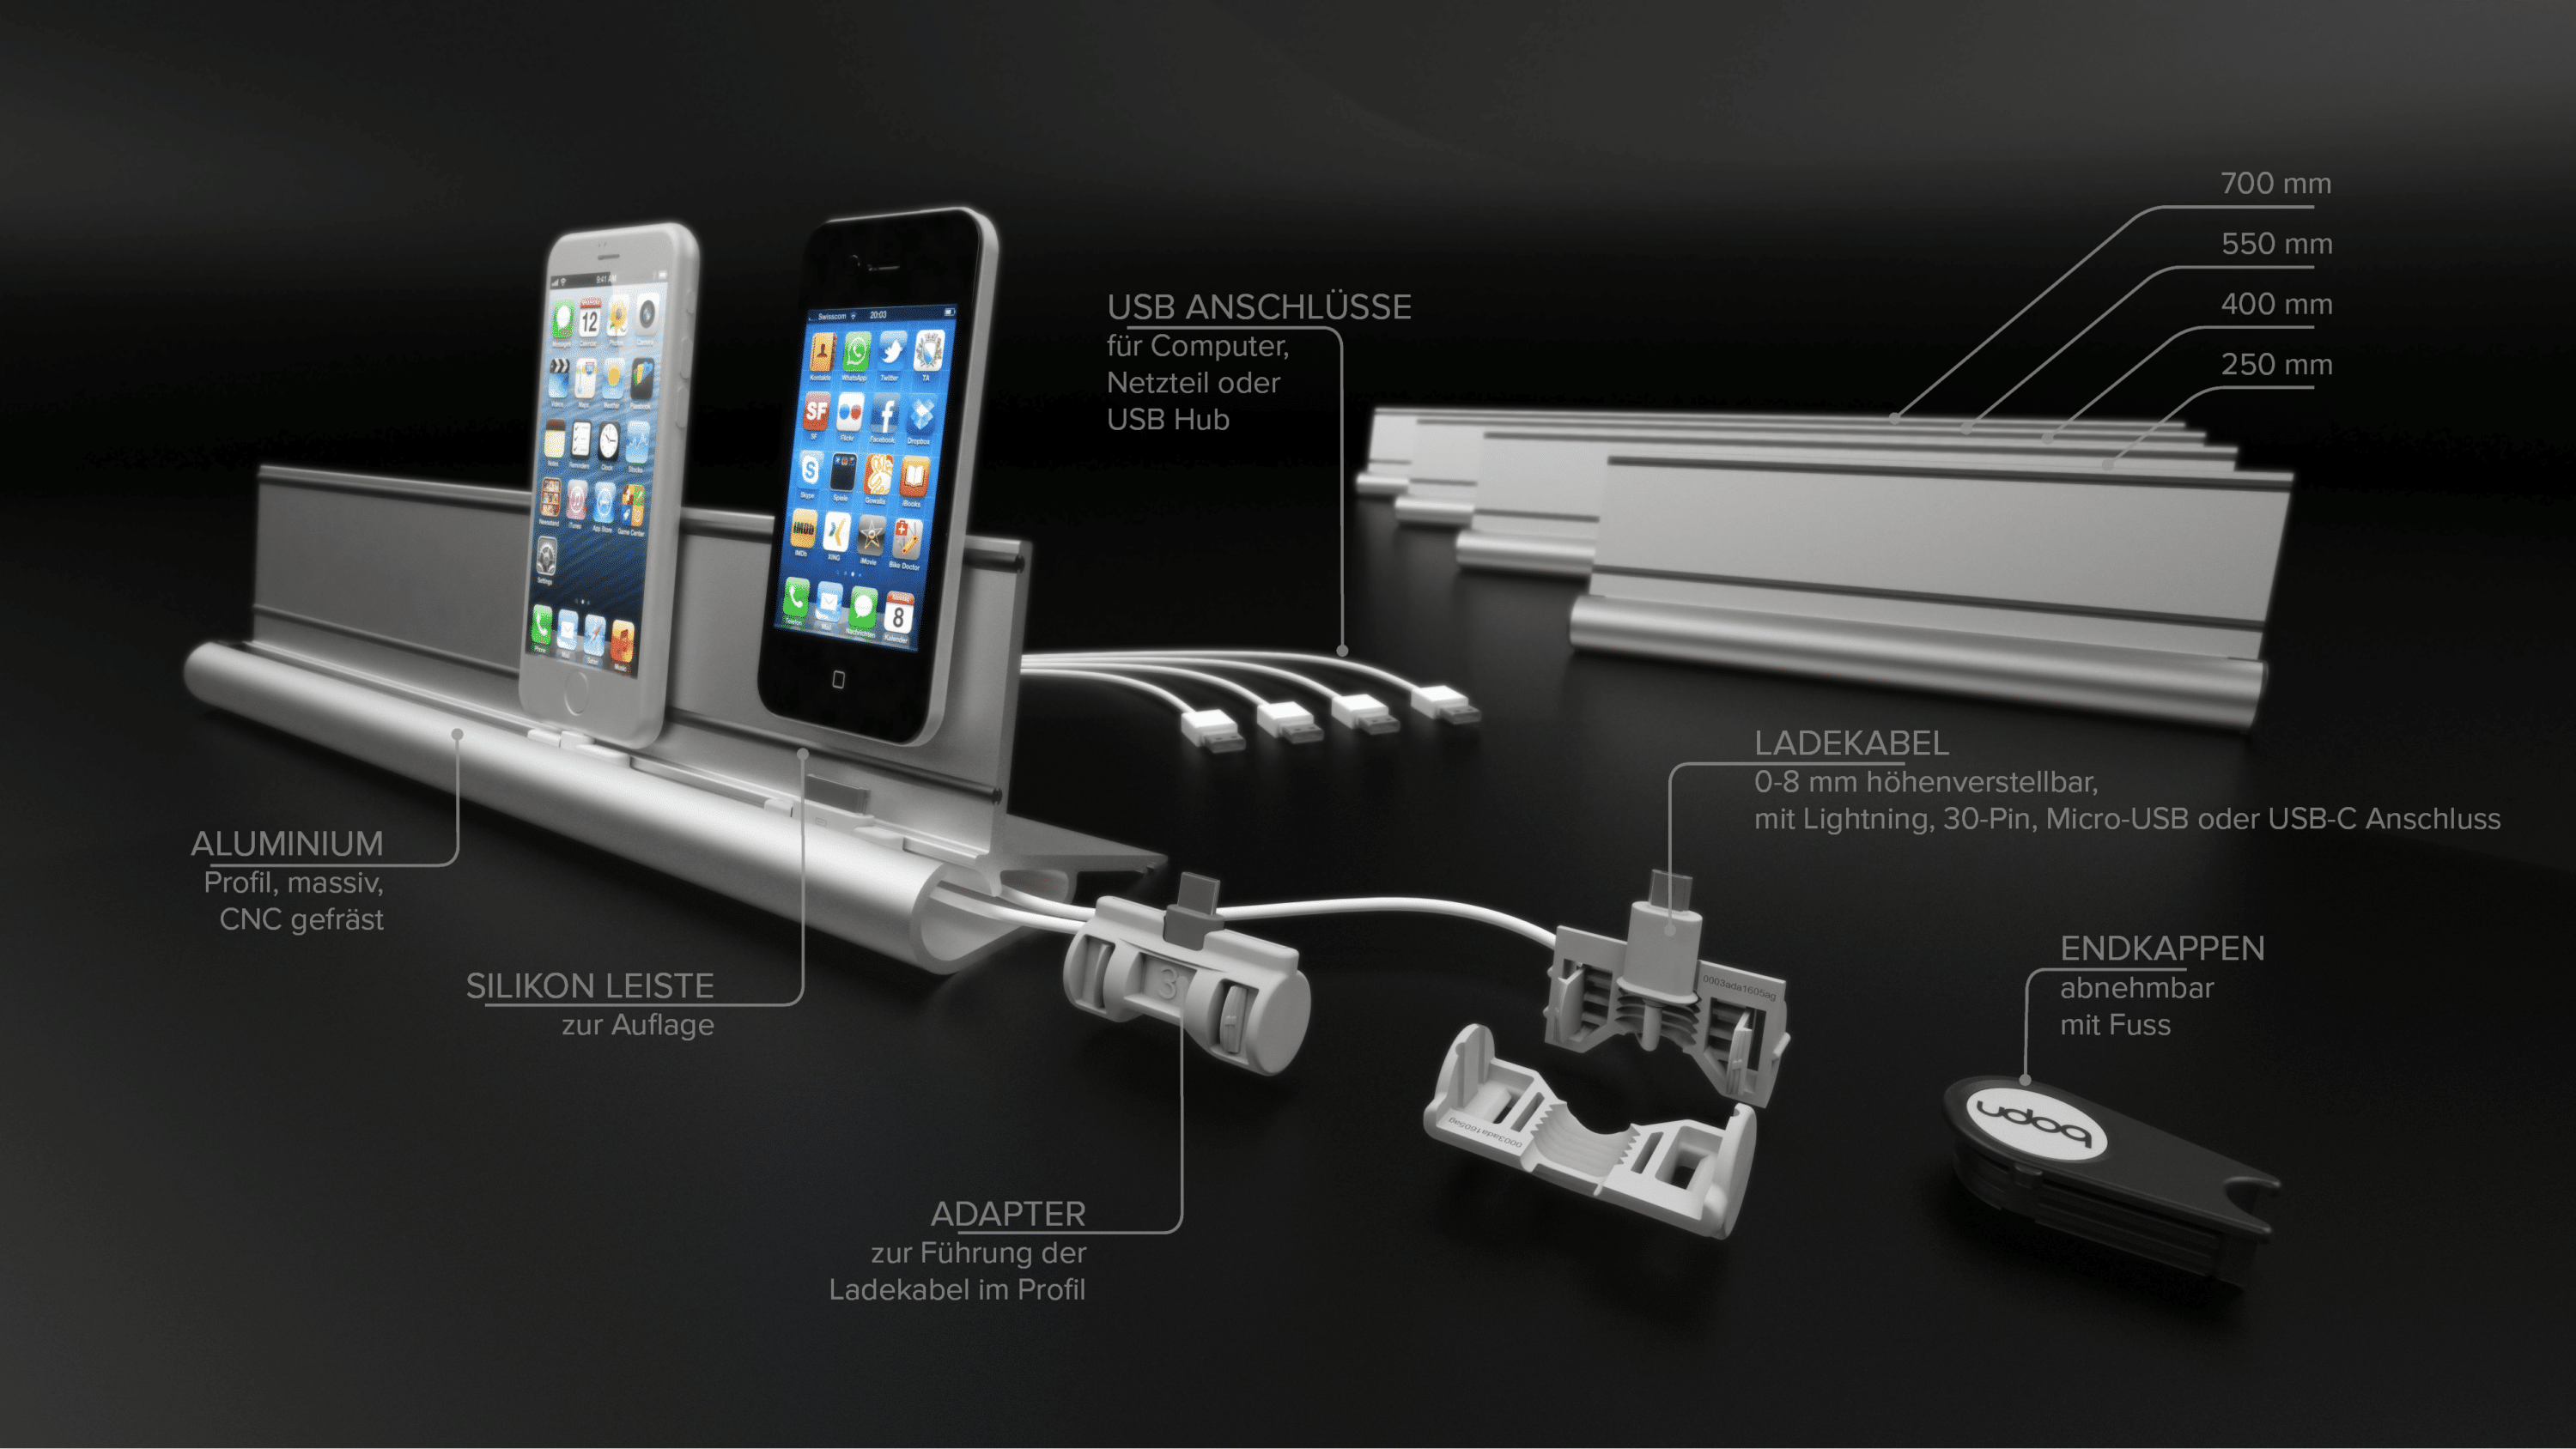 micro usb ladestation coromal caravan trailer wiring diagram udoq: dockingstation für alle smartphones und tablets